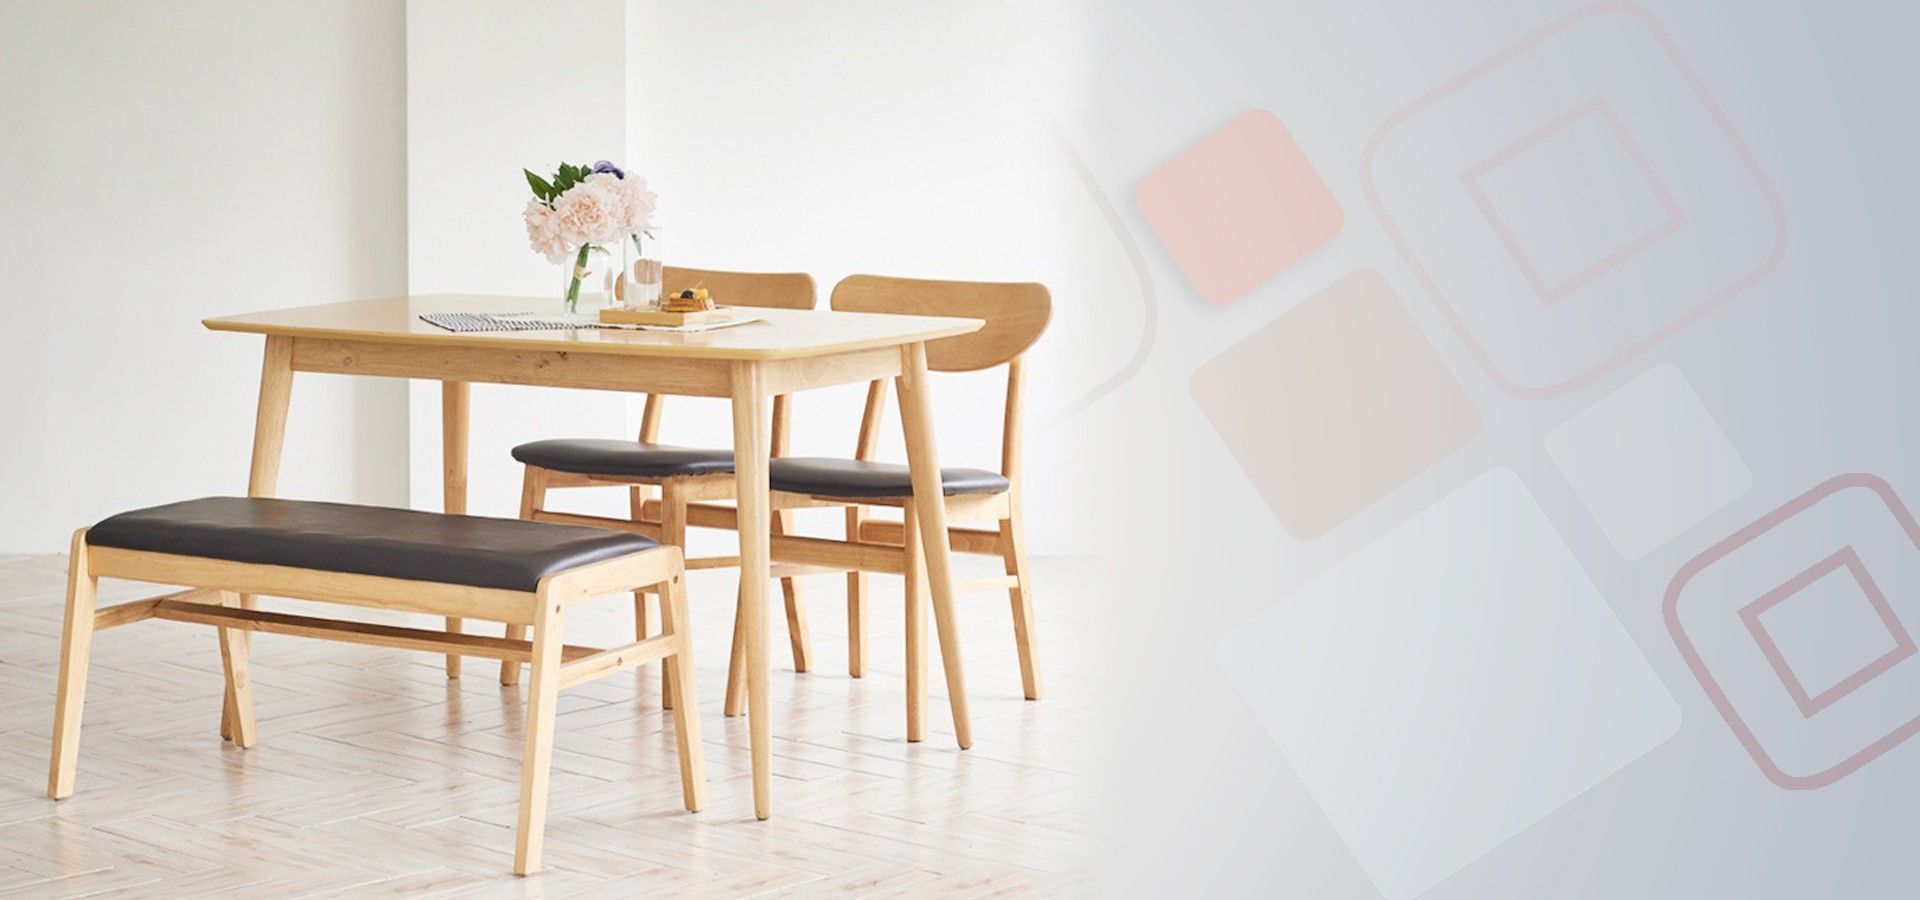 Benise Scandinavian Compact 4 Seater Dining Set A 1200 Table 2 Chairs 1 Bench Kitchen Table Glass Kitchen Tables Kitchen Table Settings